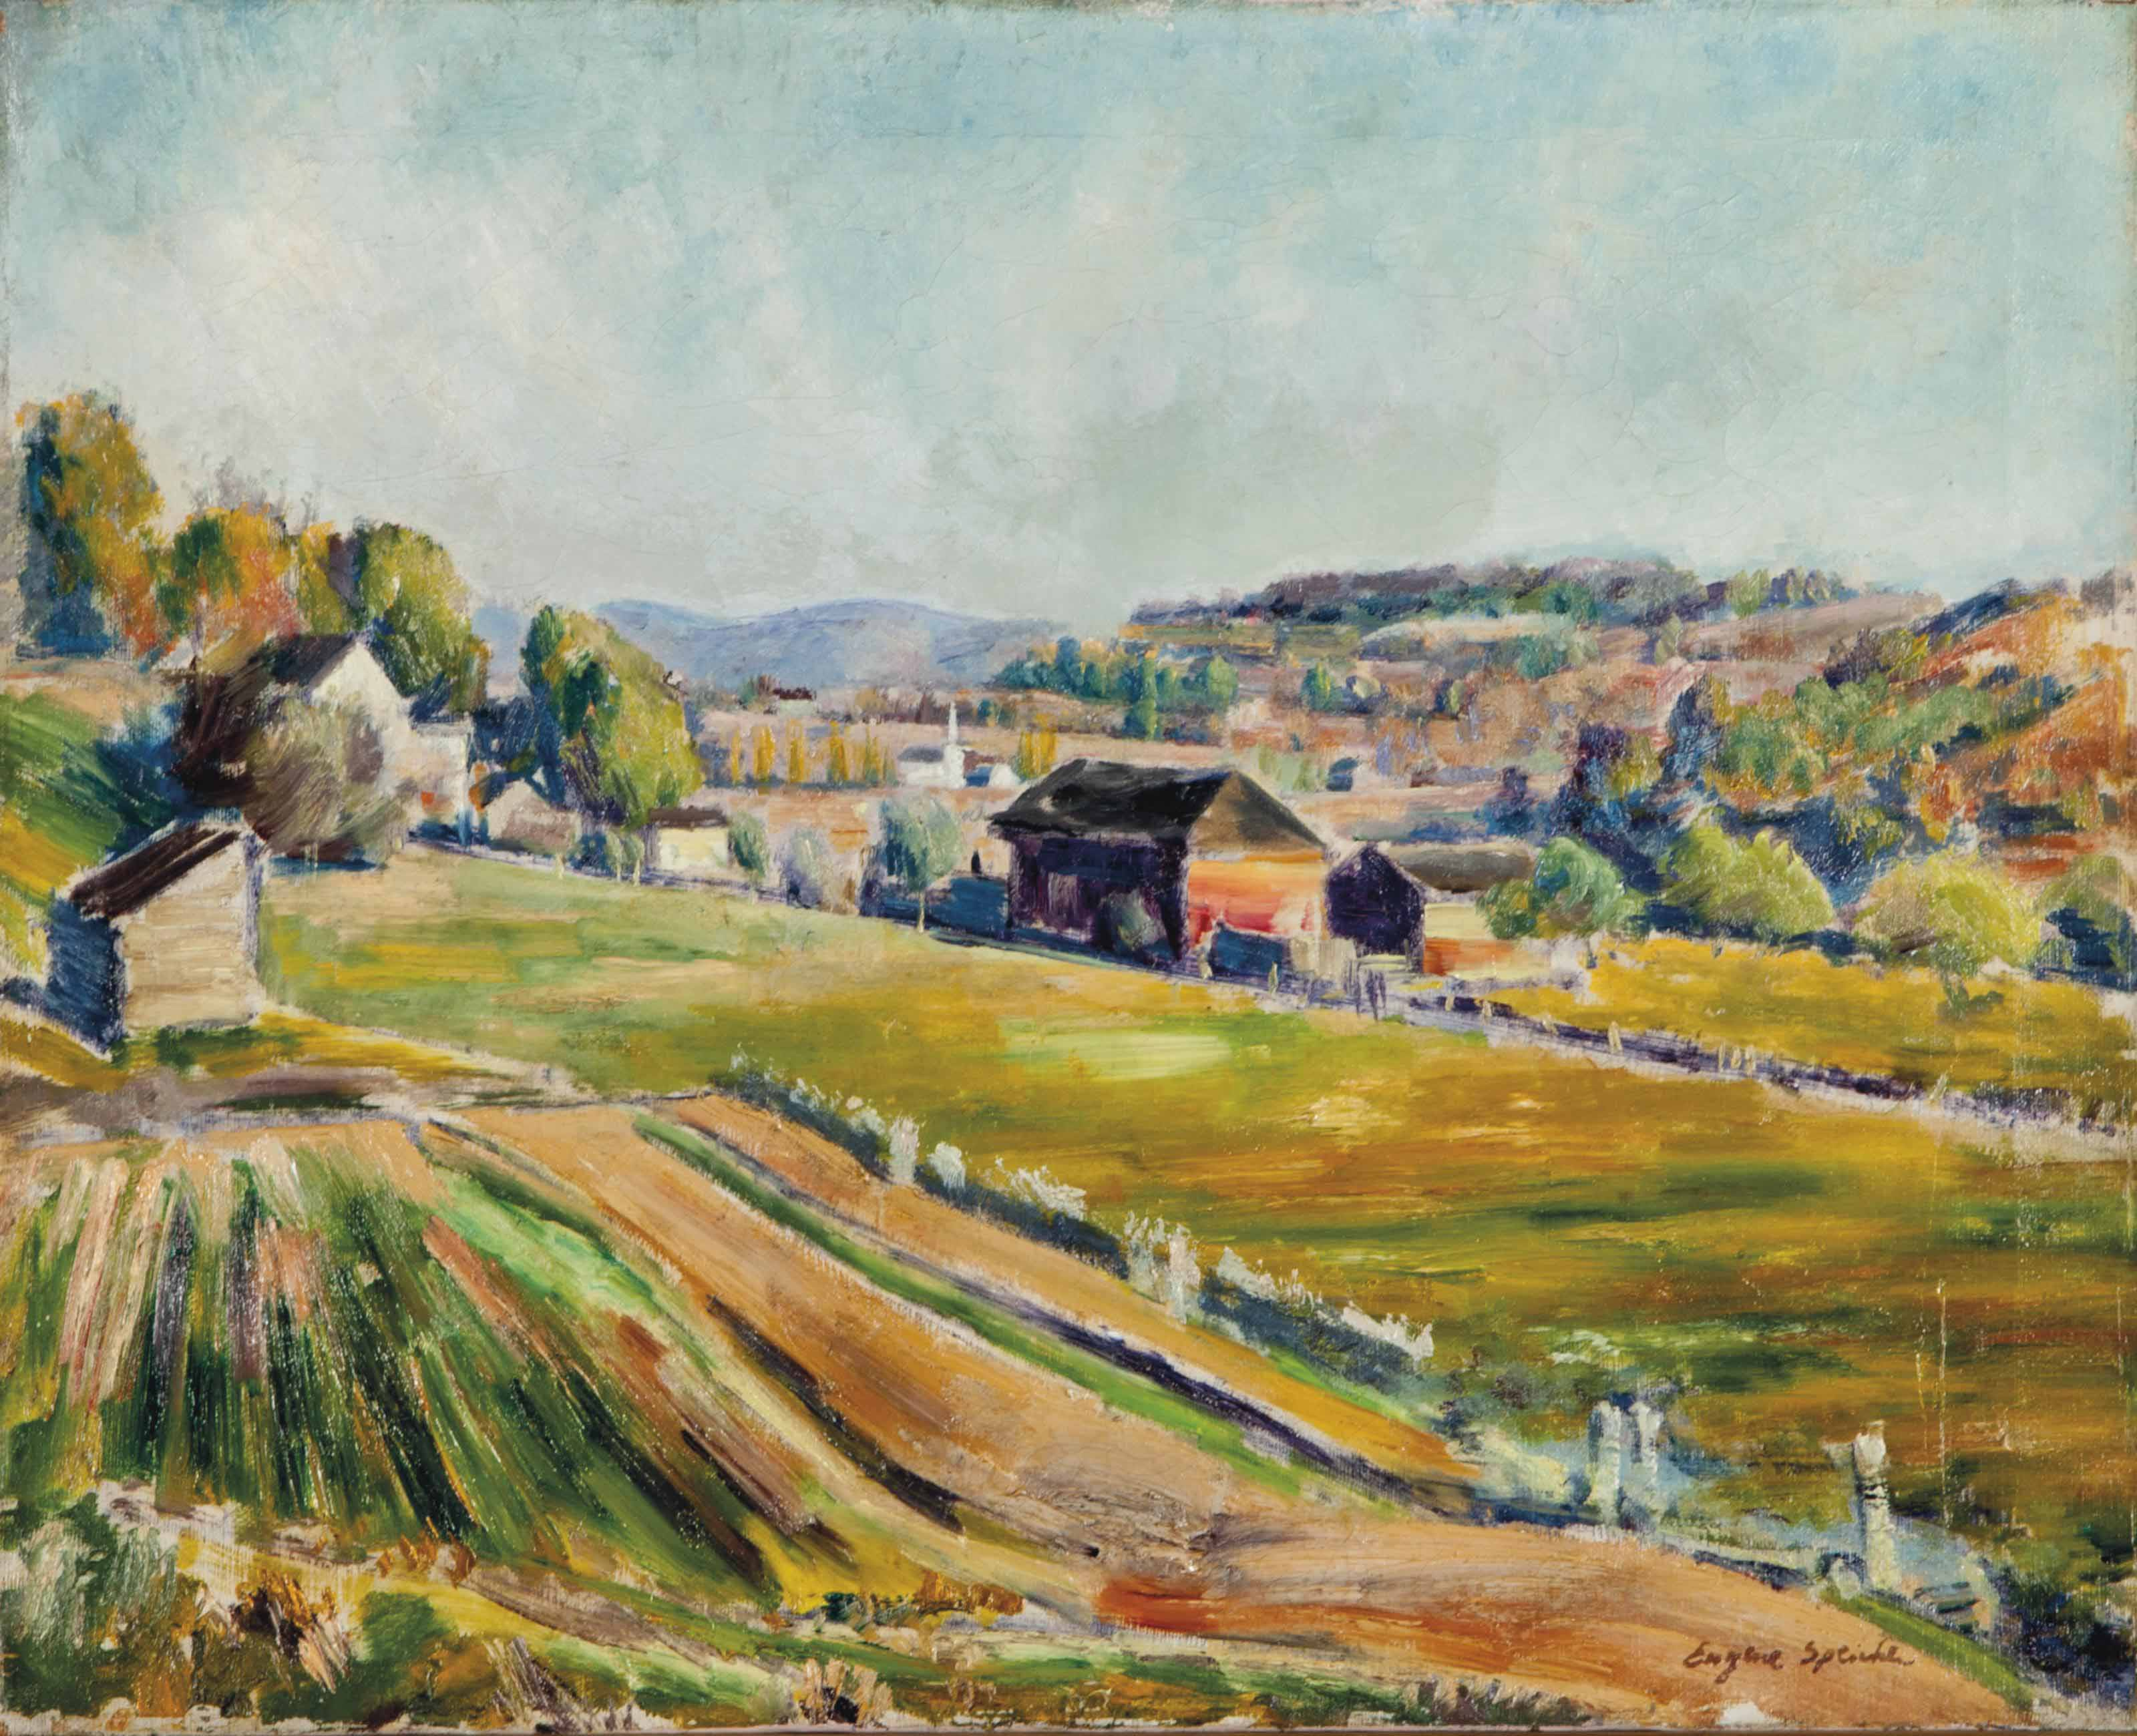 Landscape with Red Barn